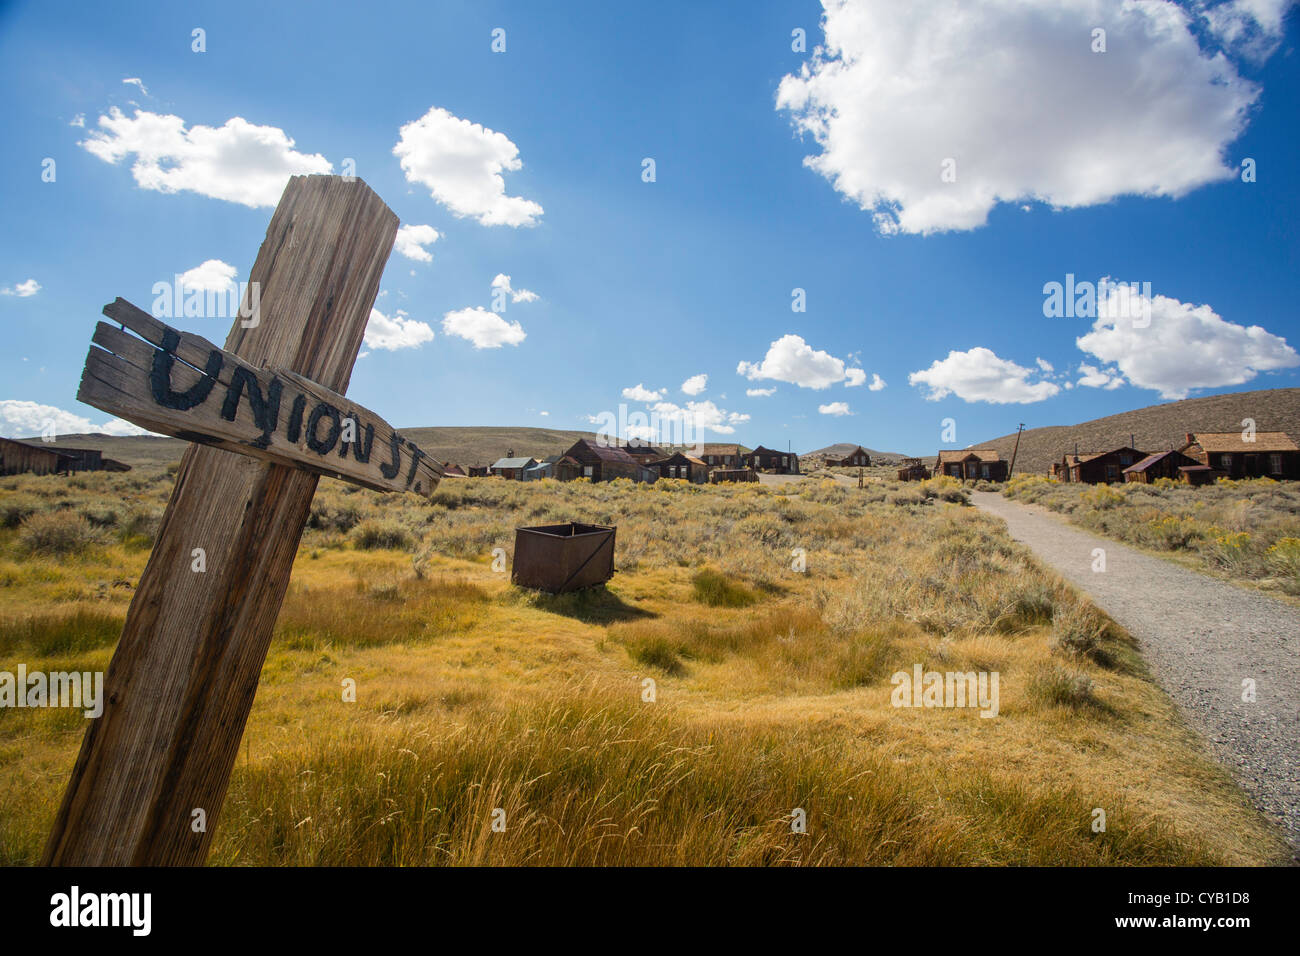 Union St in Bodie - Stock Image